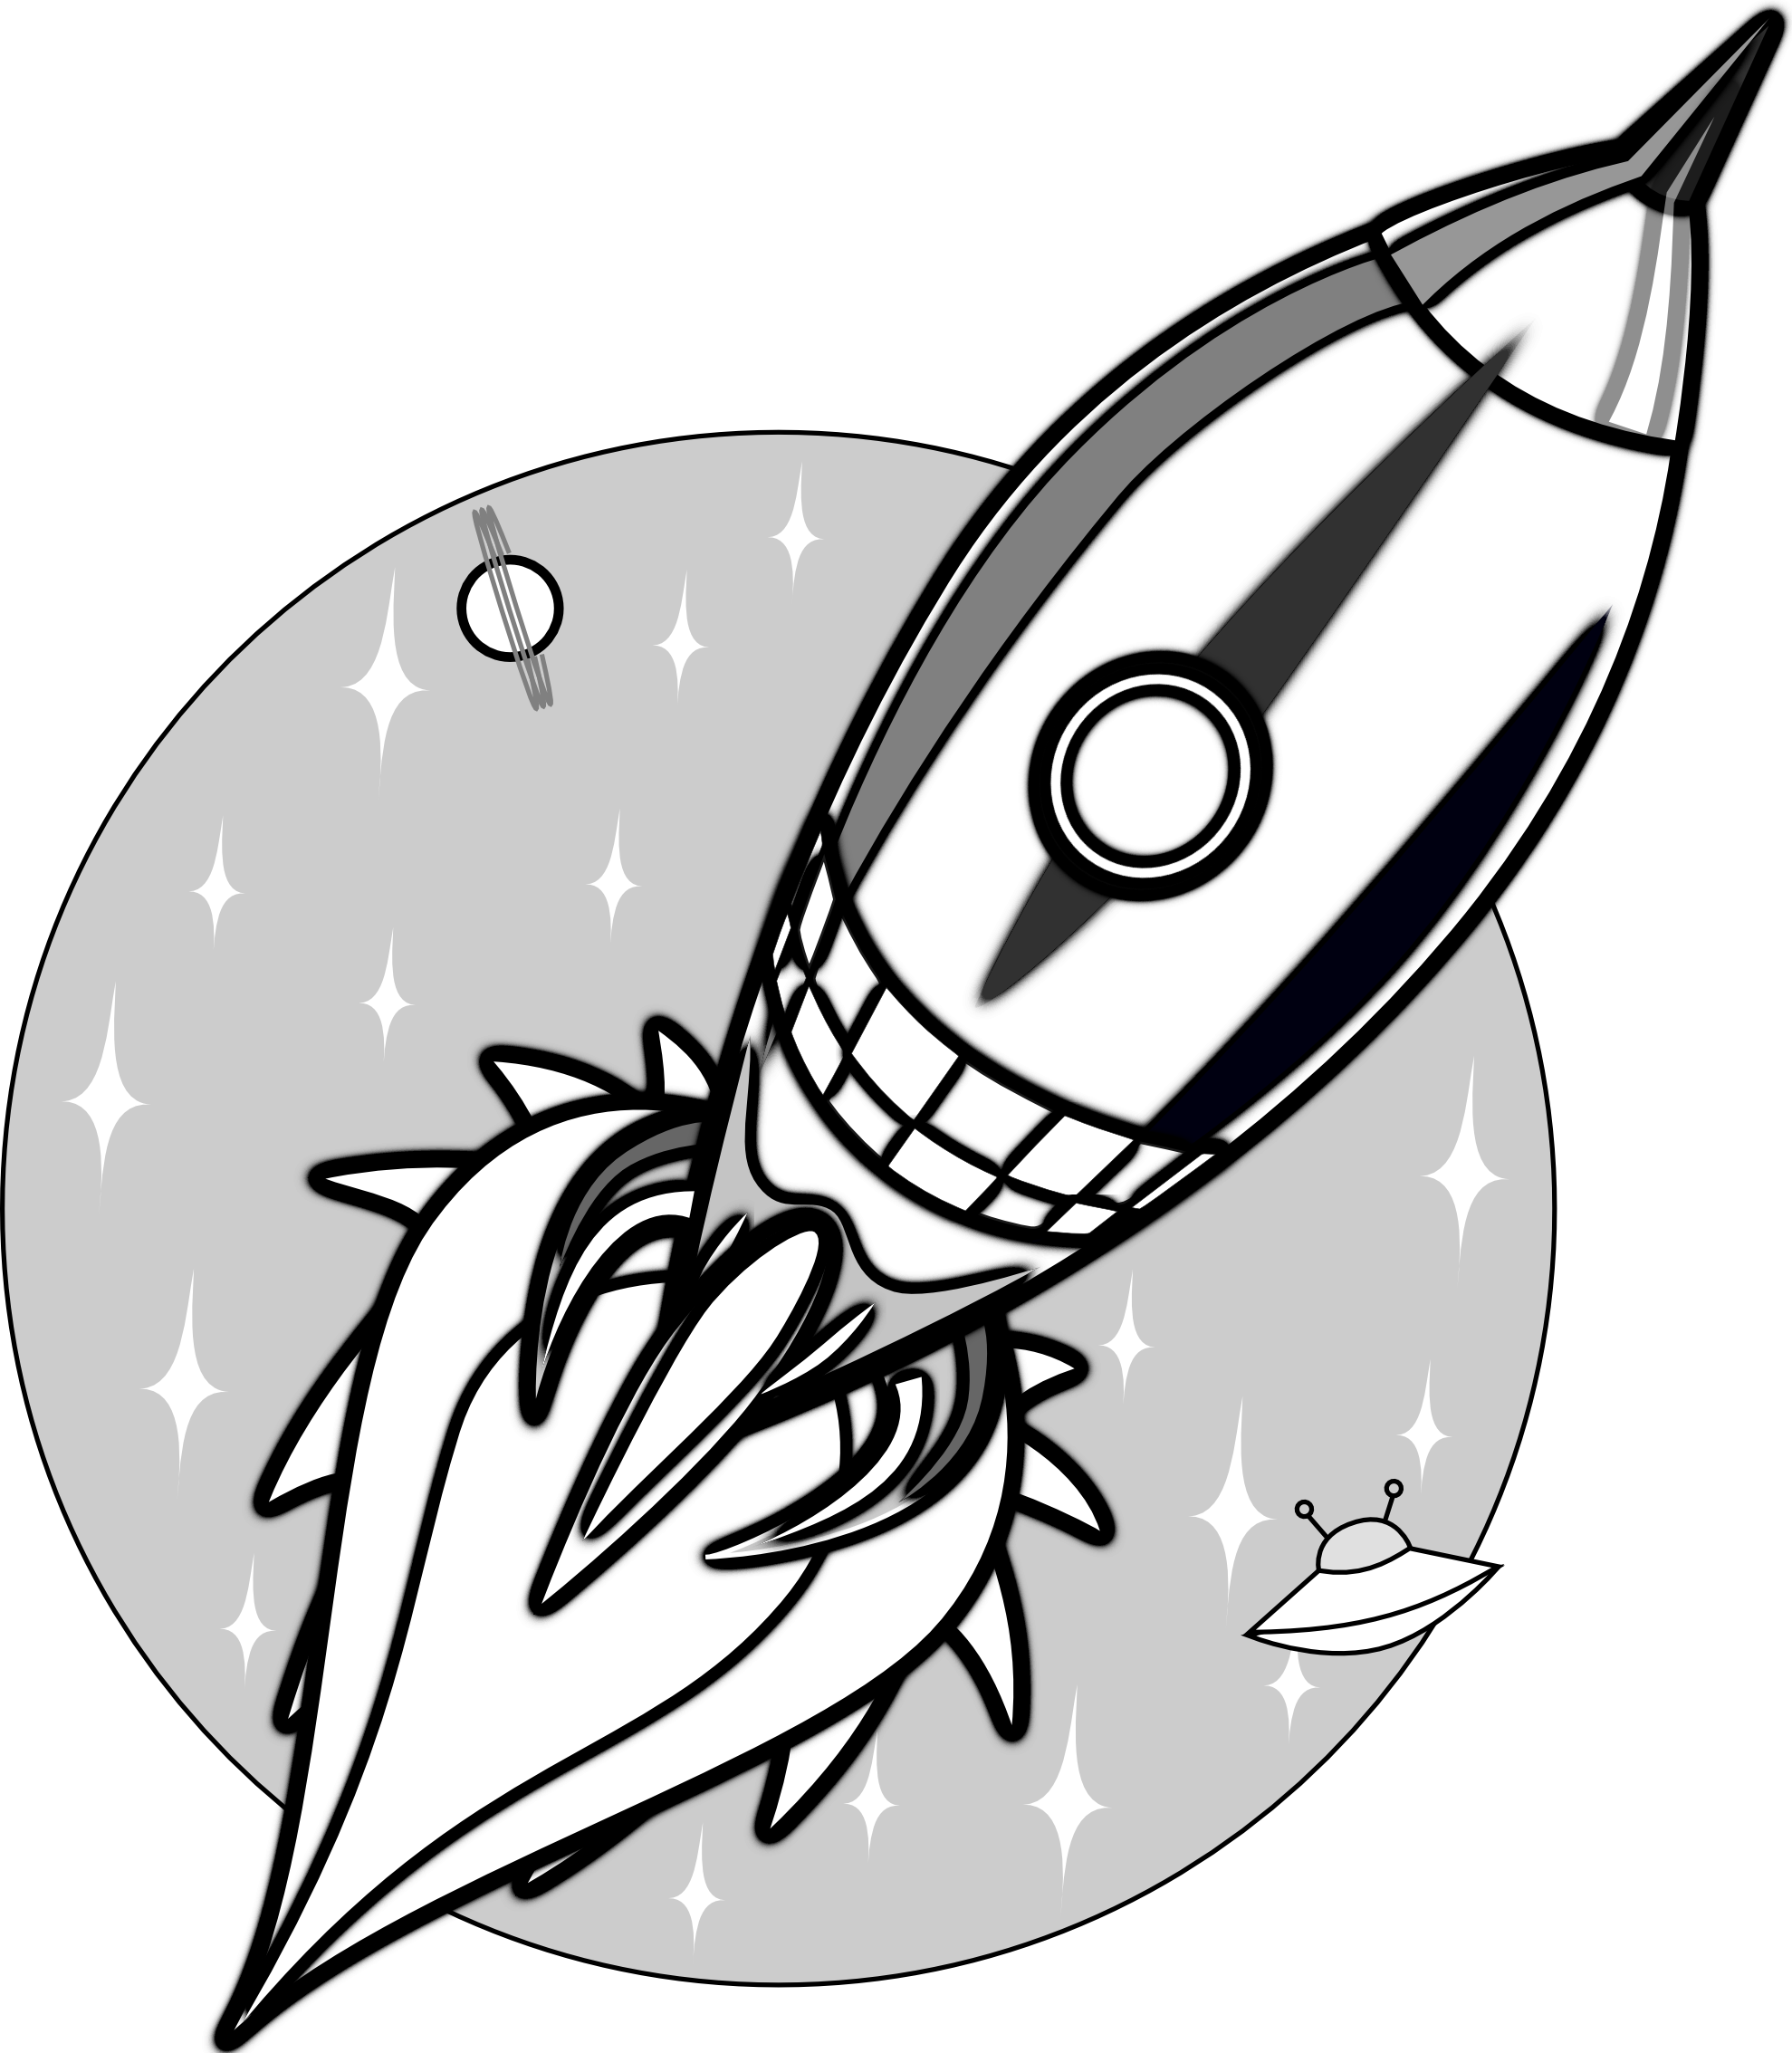 Rocketship clipart black and white. Images for rocket clip